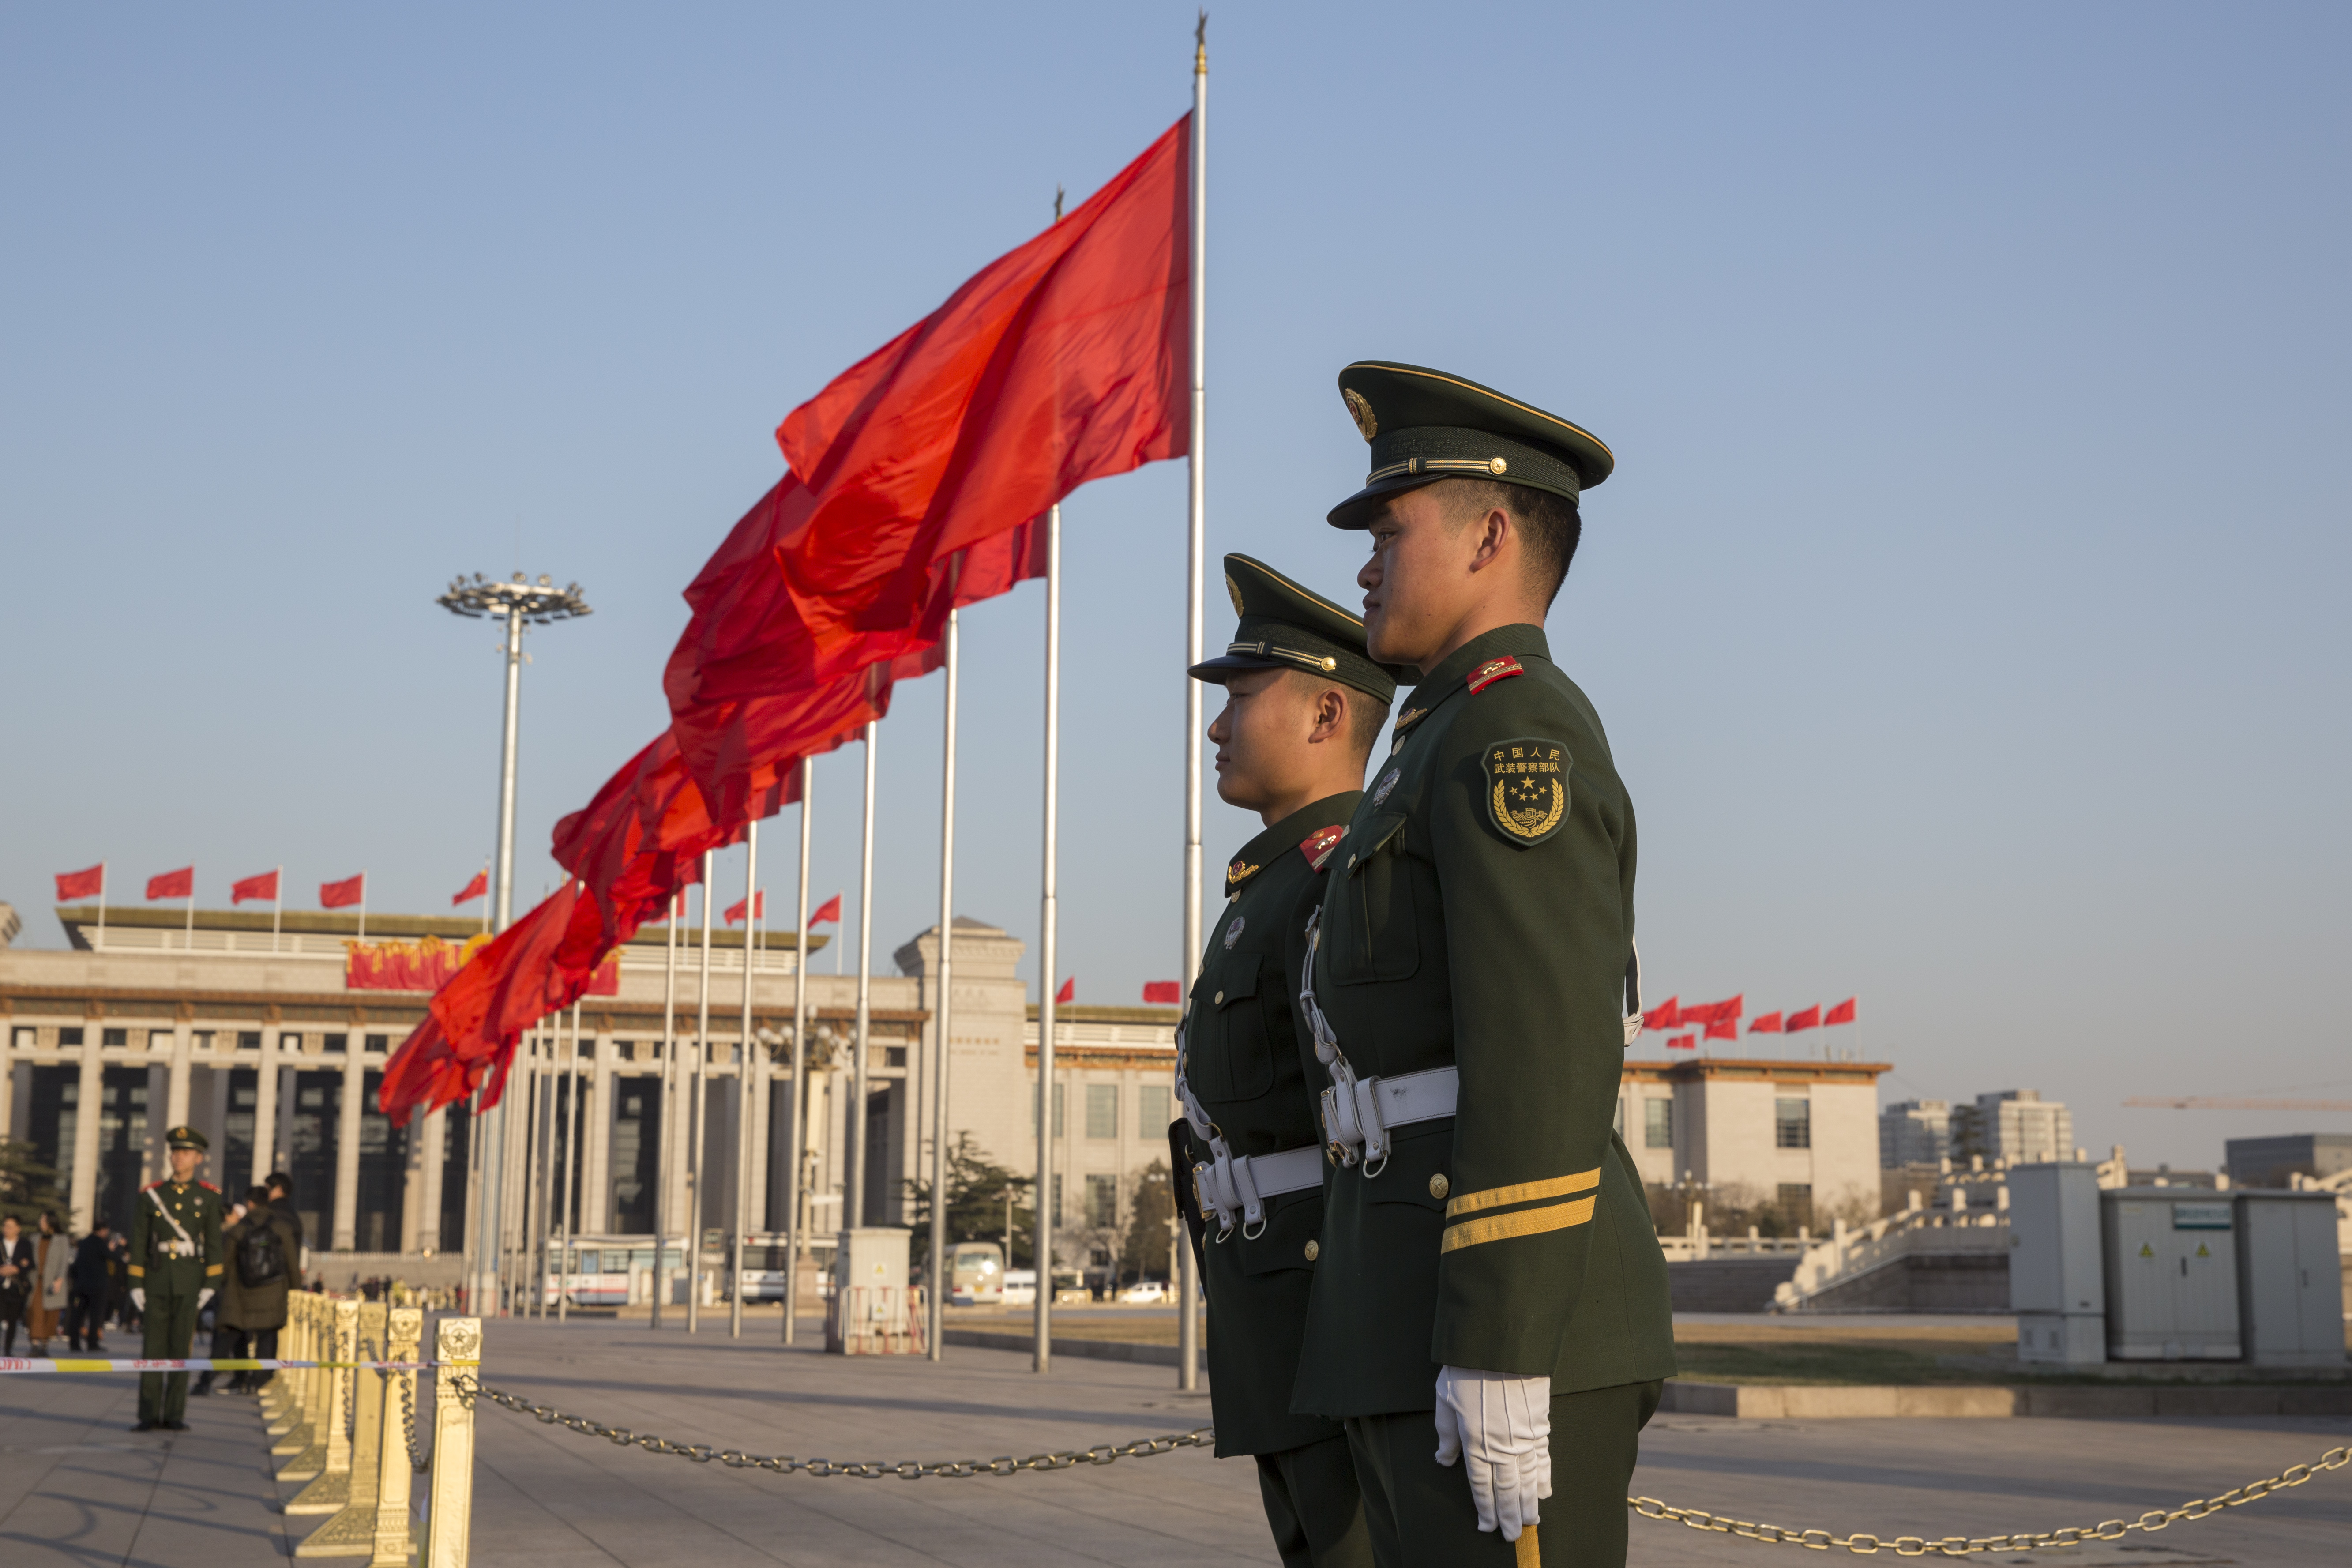 Armed policemen patrol for two sessions at Tian'anmen Square on March 2, 2017 in Beijing, China.